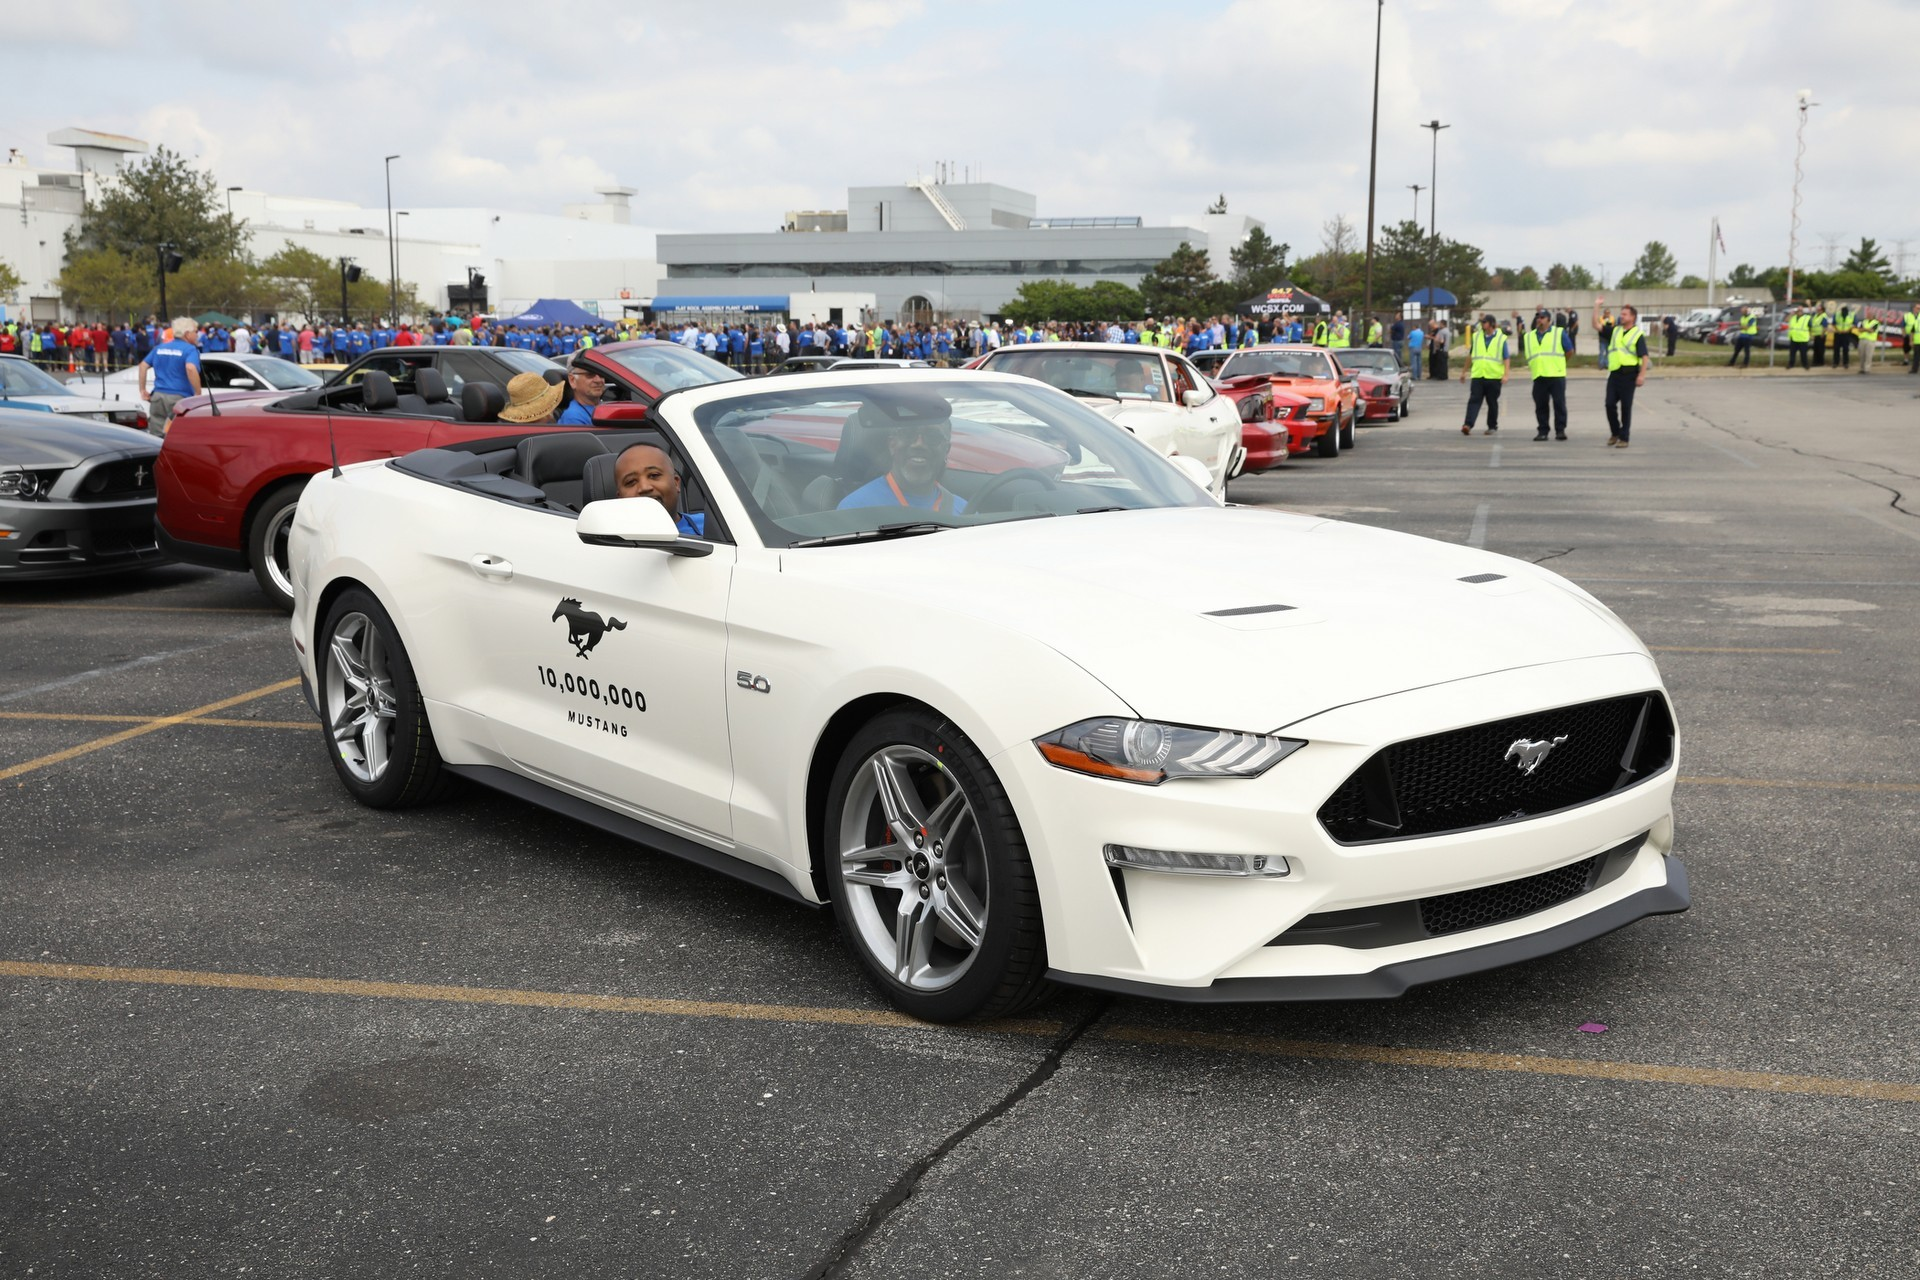 Ford Mustang 10 million (7)